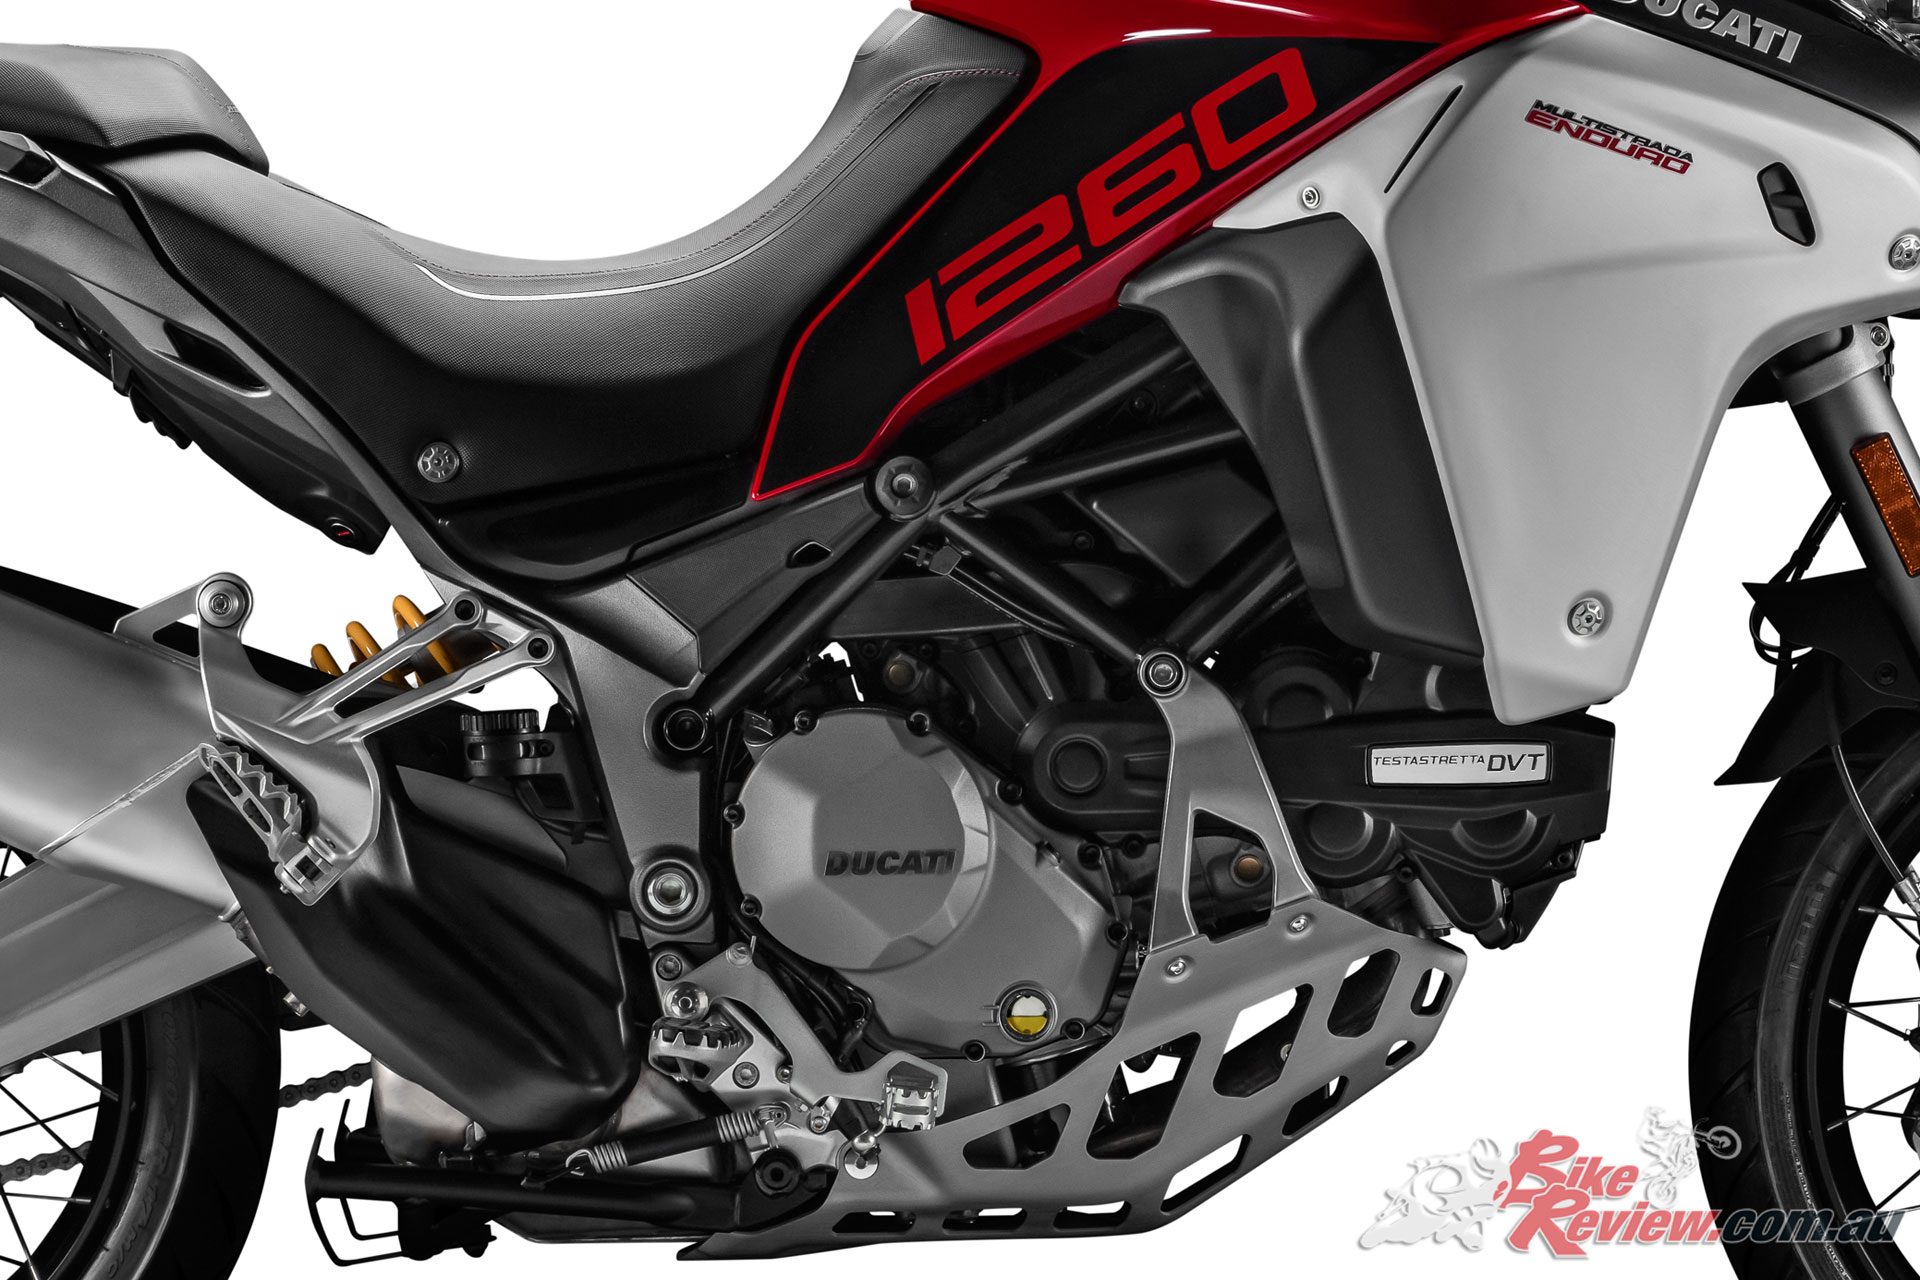 The 2019 Multistrada Enduro will boast the 1260 Testastretta DVT powerplant